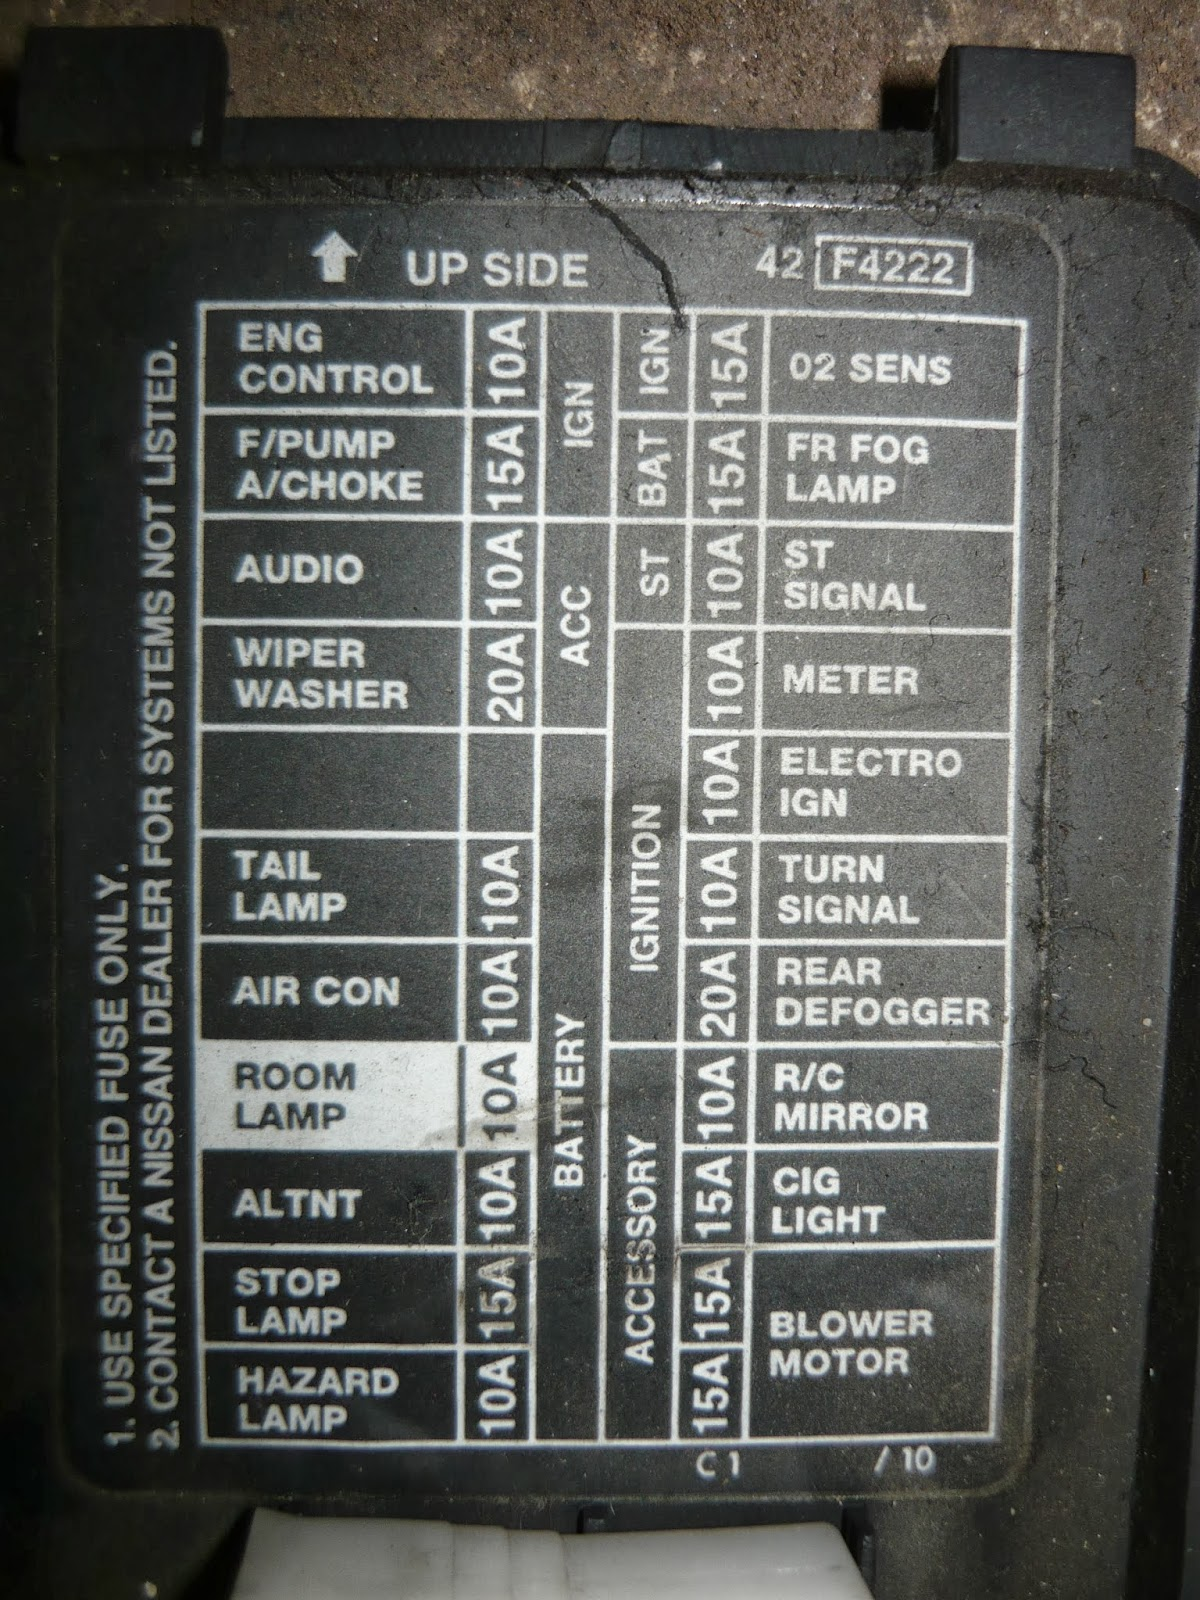 2003 Saturn Ion Fuse Box Diagram All Kind Of Wiring Diagrams 2001 Ac Location On 2002 Nissan Altima Odicis Sl1